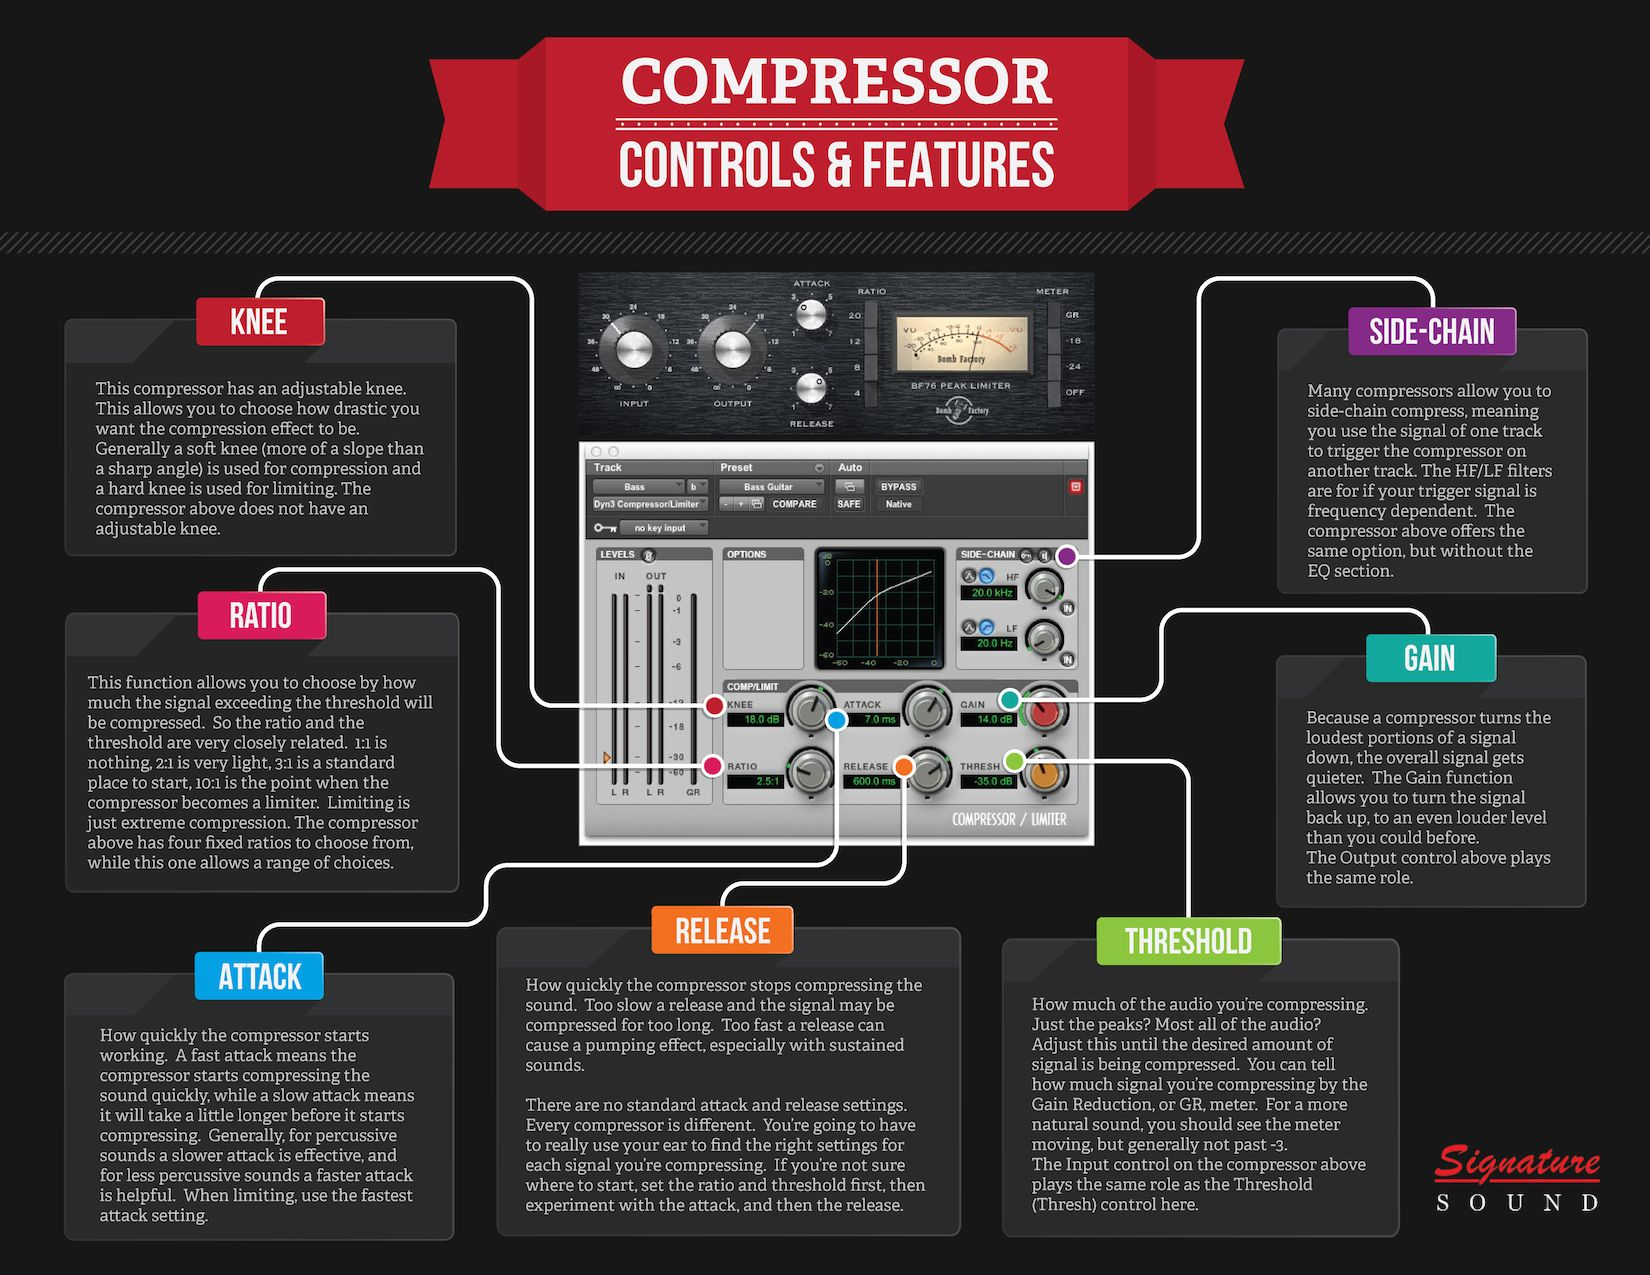 Compressors Are One Of The Most Powerful Tools In A Sound Engineer S Arsenal Compression Can Music Engineers Music Recording Studio Music Mixing